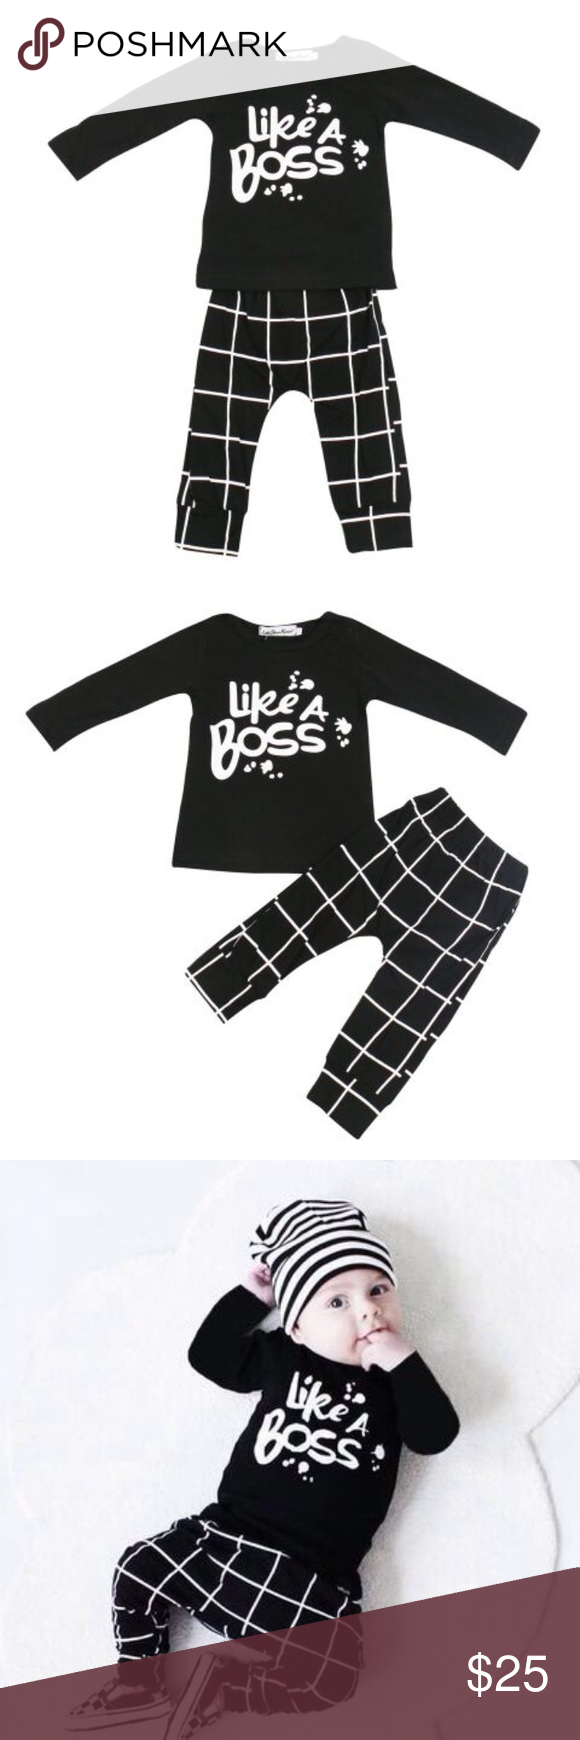 Unisex Like A Boss printed baby outfit 3-6 months Super trendy long sleeve unisex baby outfit for 3-6 months.  Comes with Top and Bottom. Hat not included Matching Sets